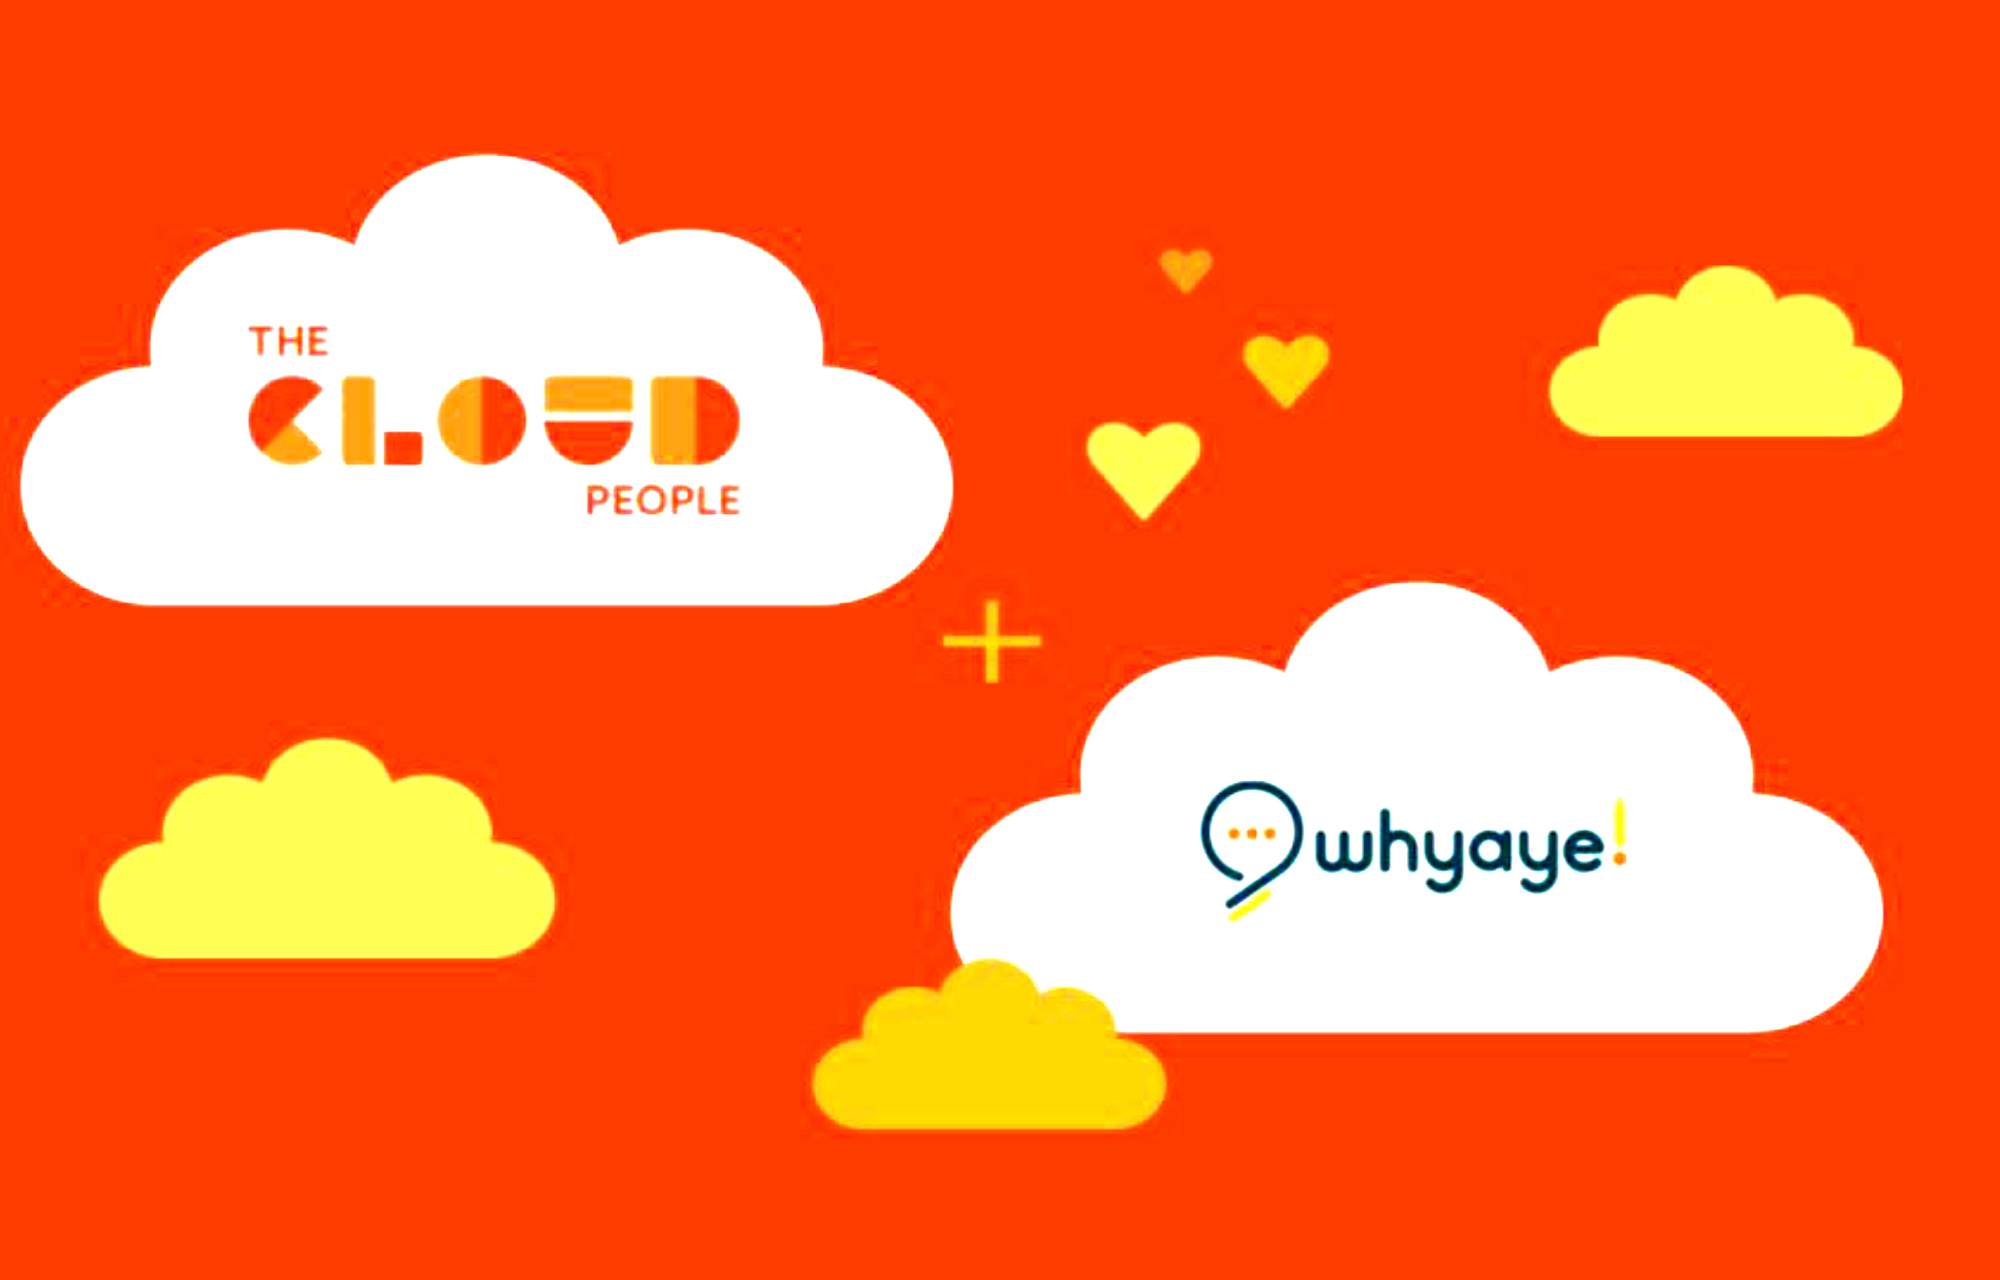 Partnership announcement – whyaye